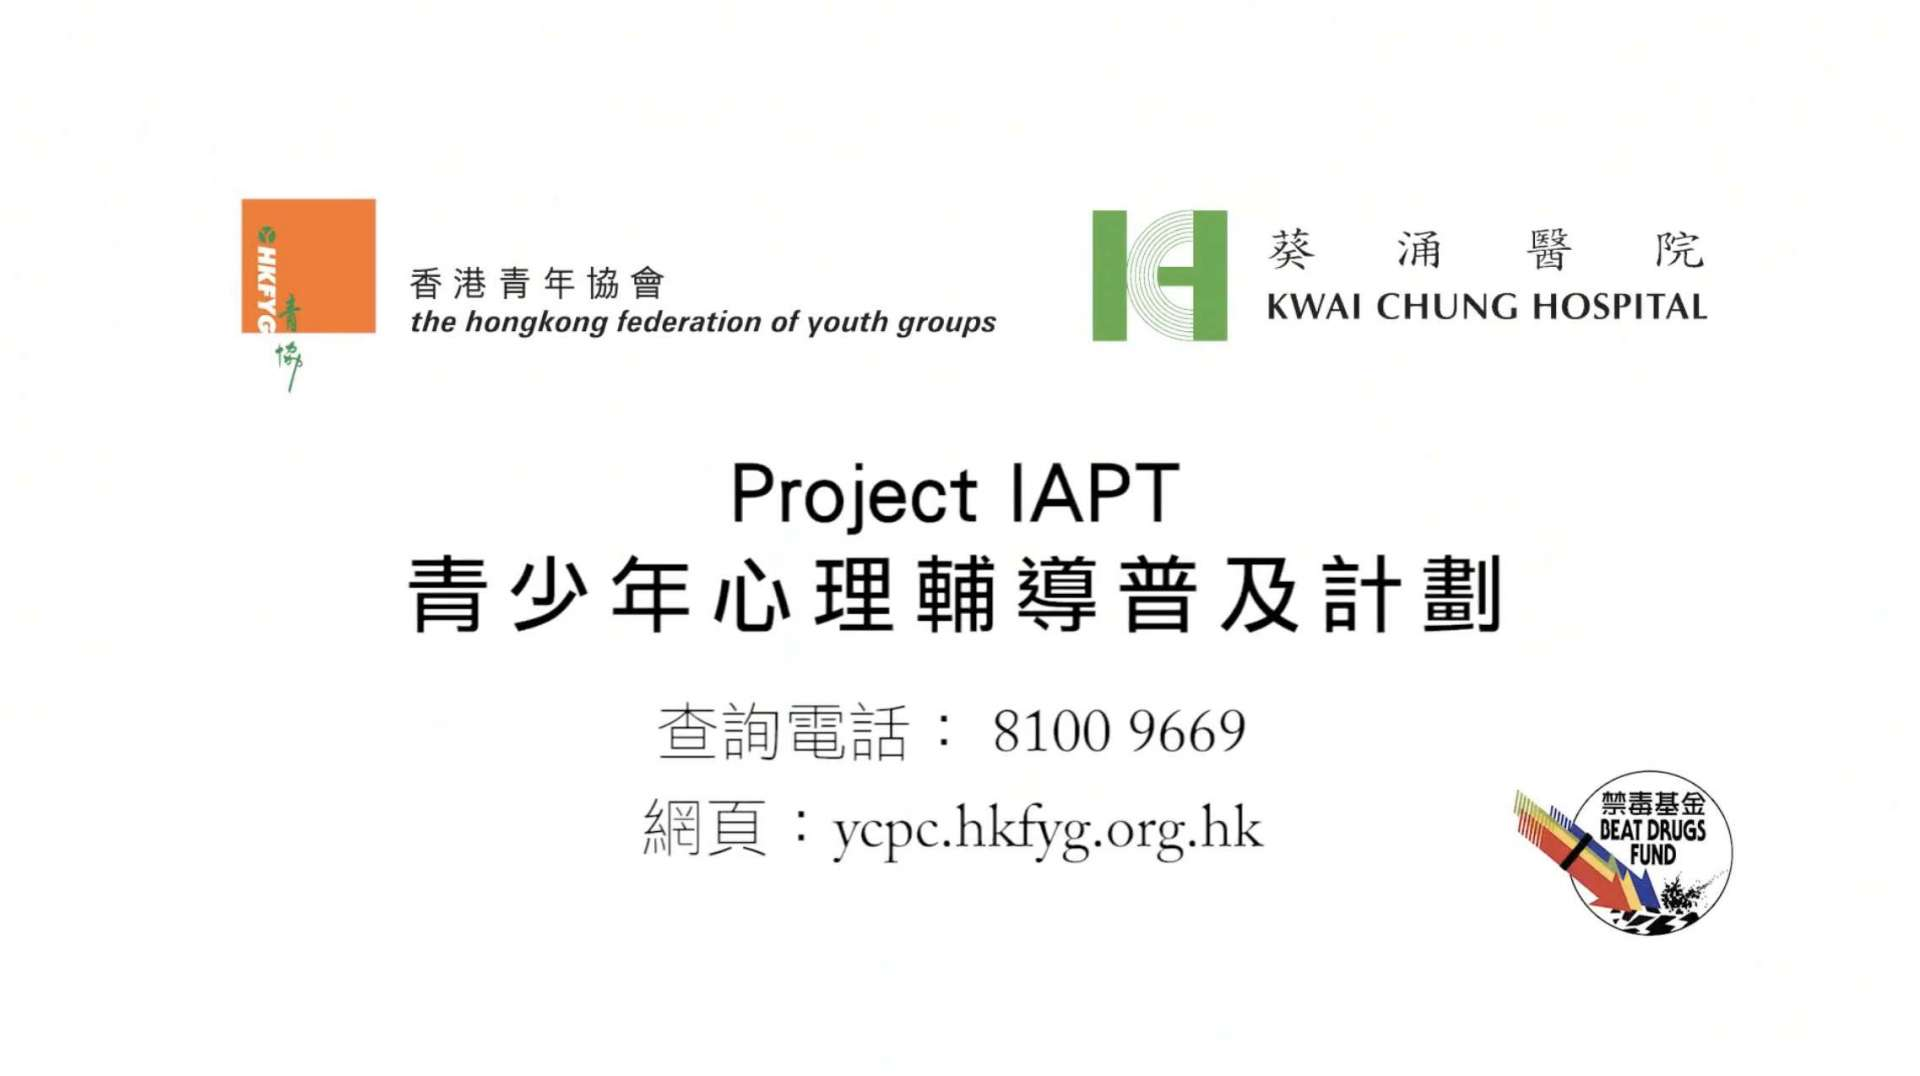 Project IAPT